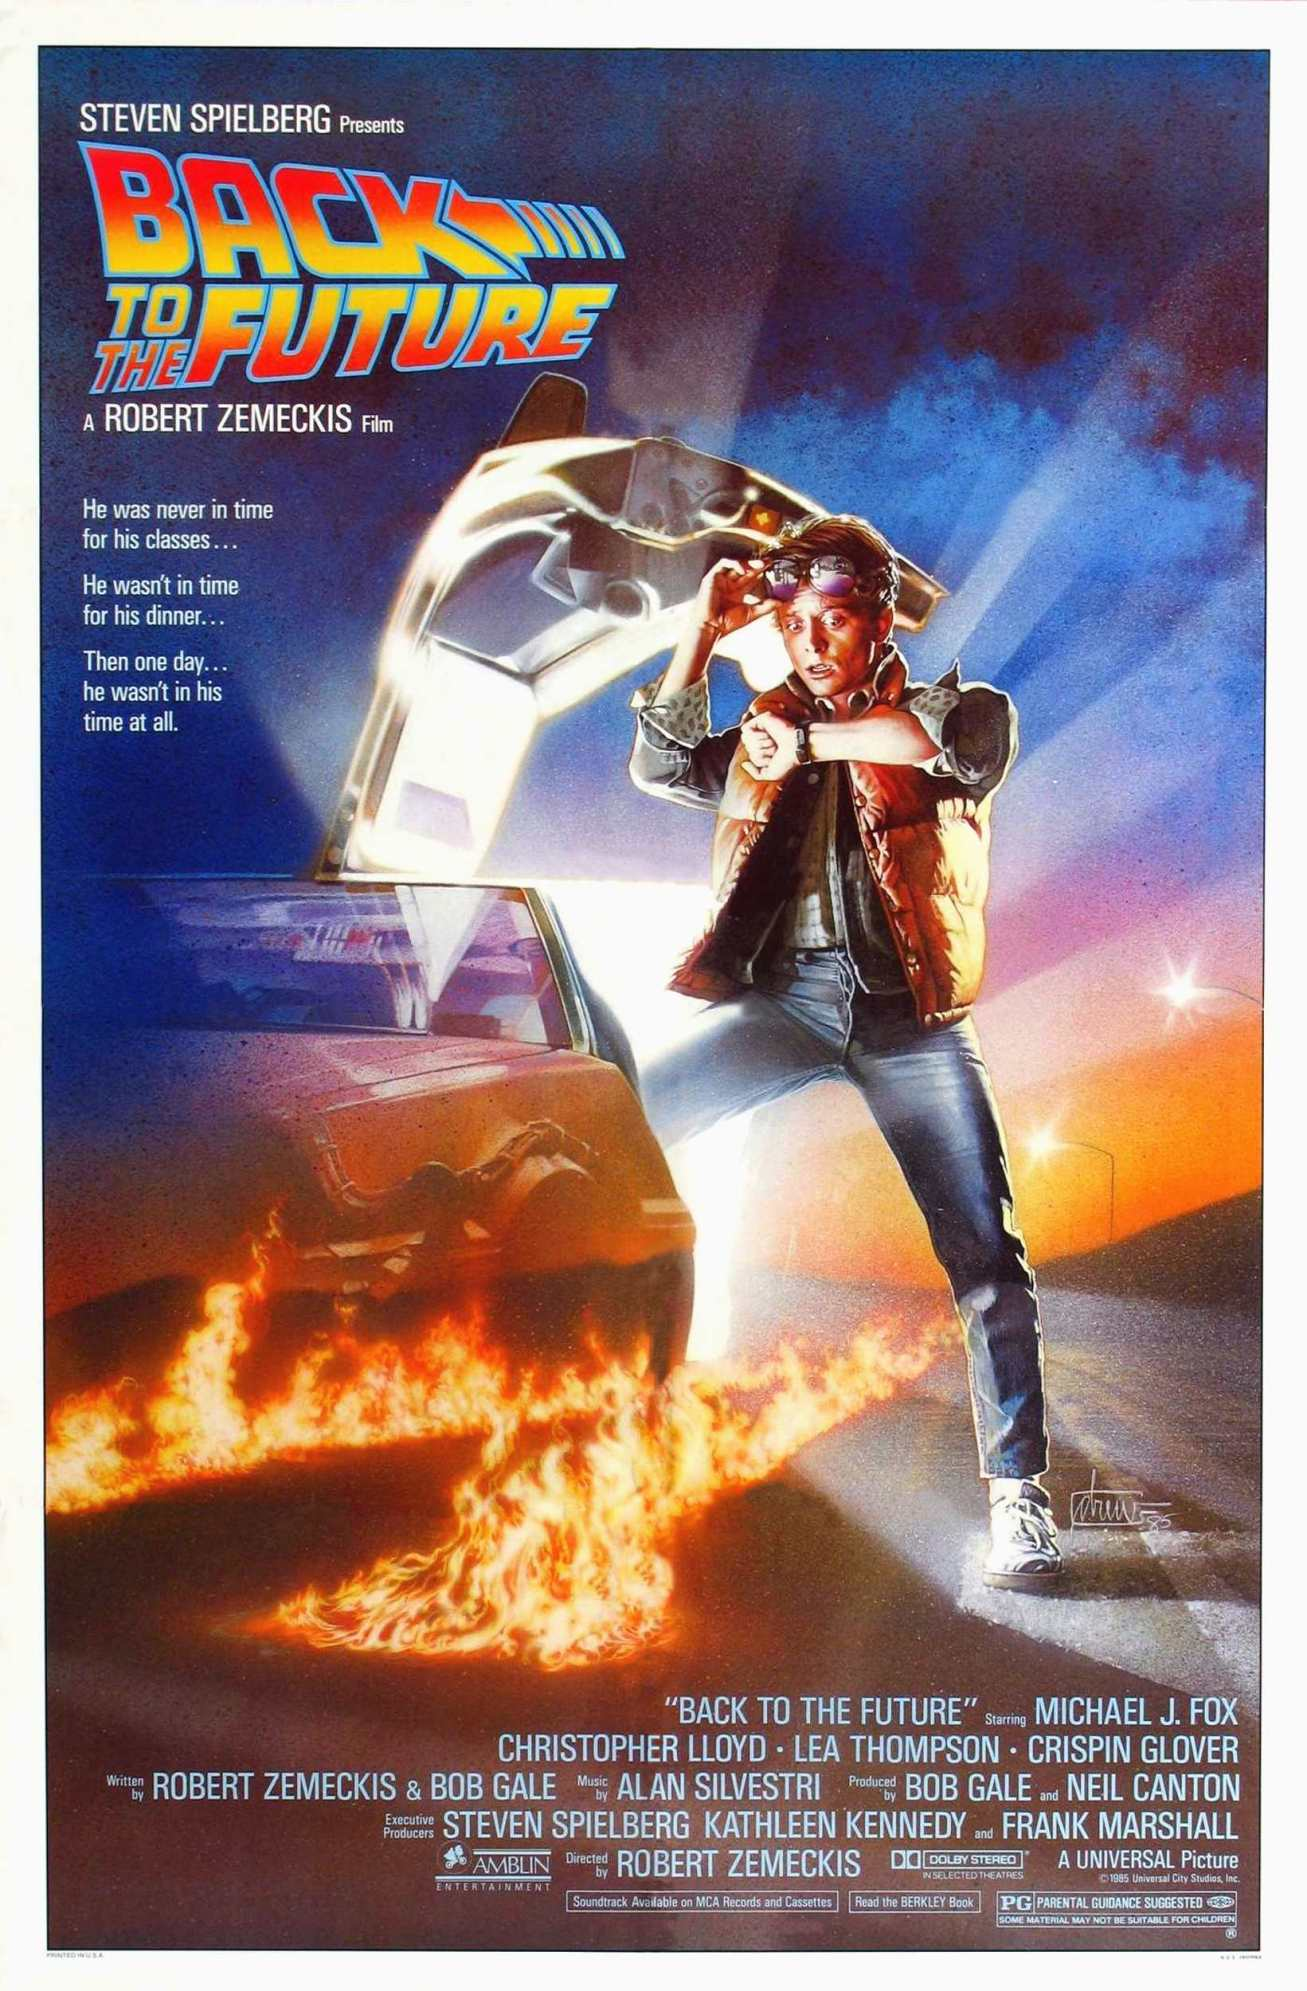 """PAST: OUTDOOR FILM: The Final """"Screen on the Green"""" will feature the classic """"Back to the Future"""" on MON, August 10, film screens at dusk, around 8:30pm, on The National Mall, Free"""